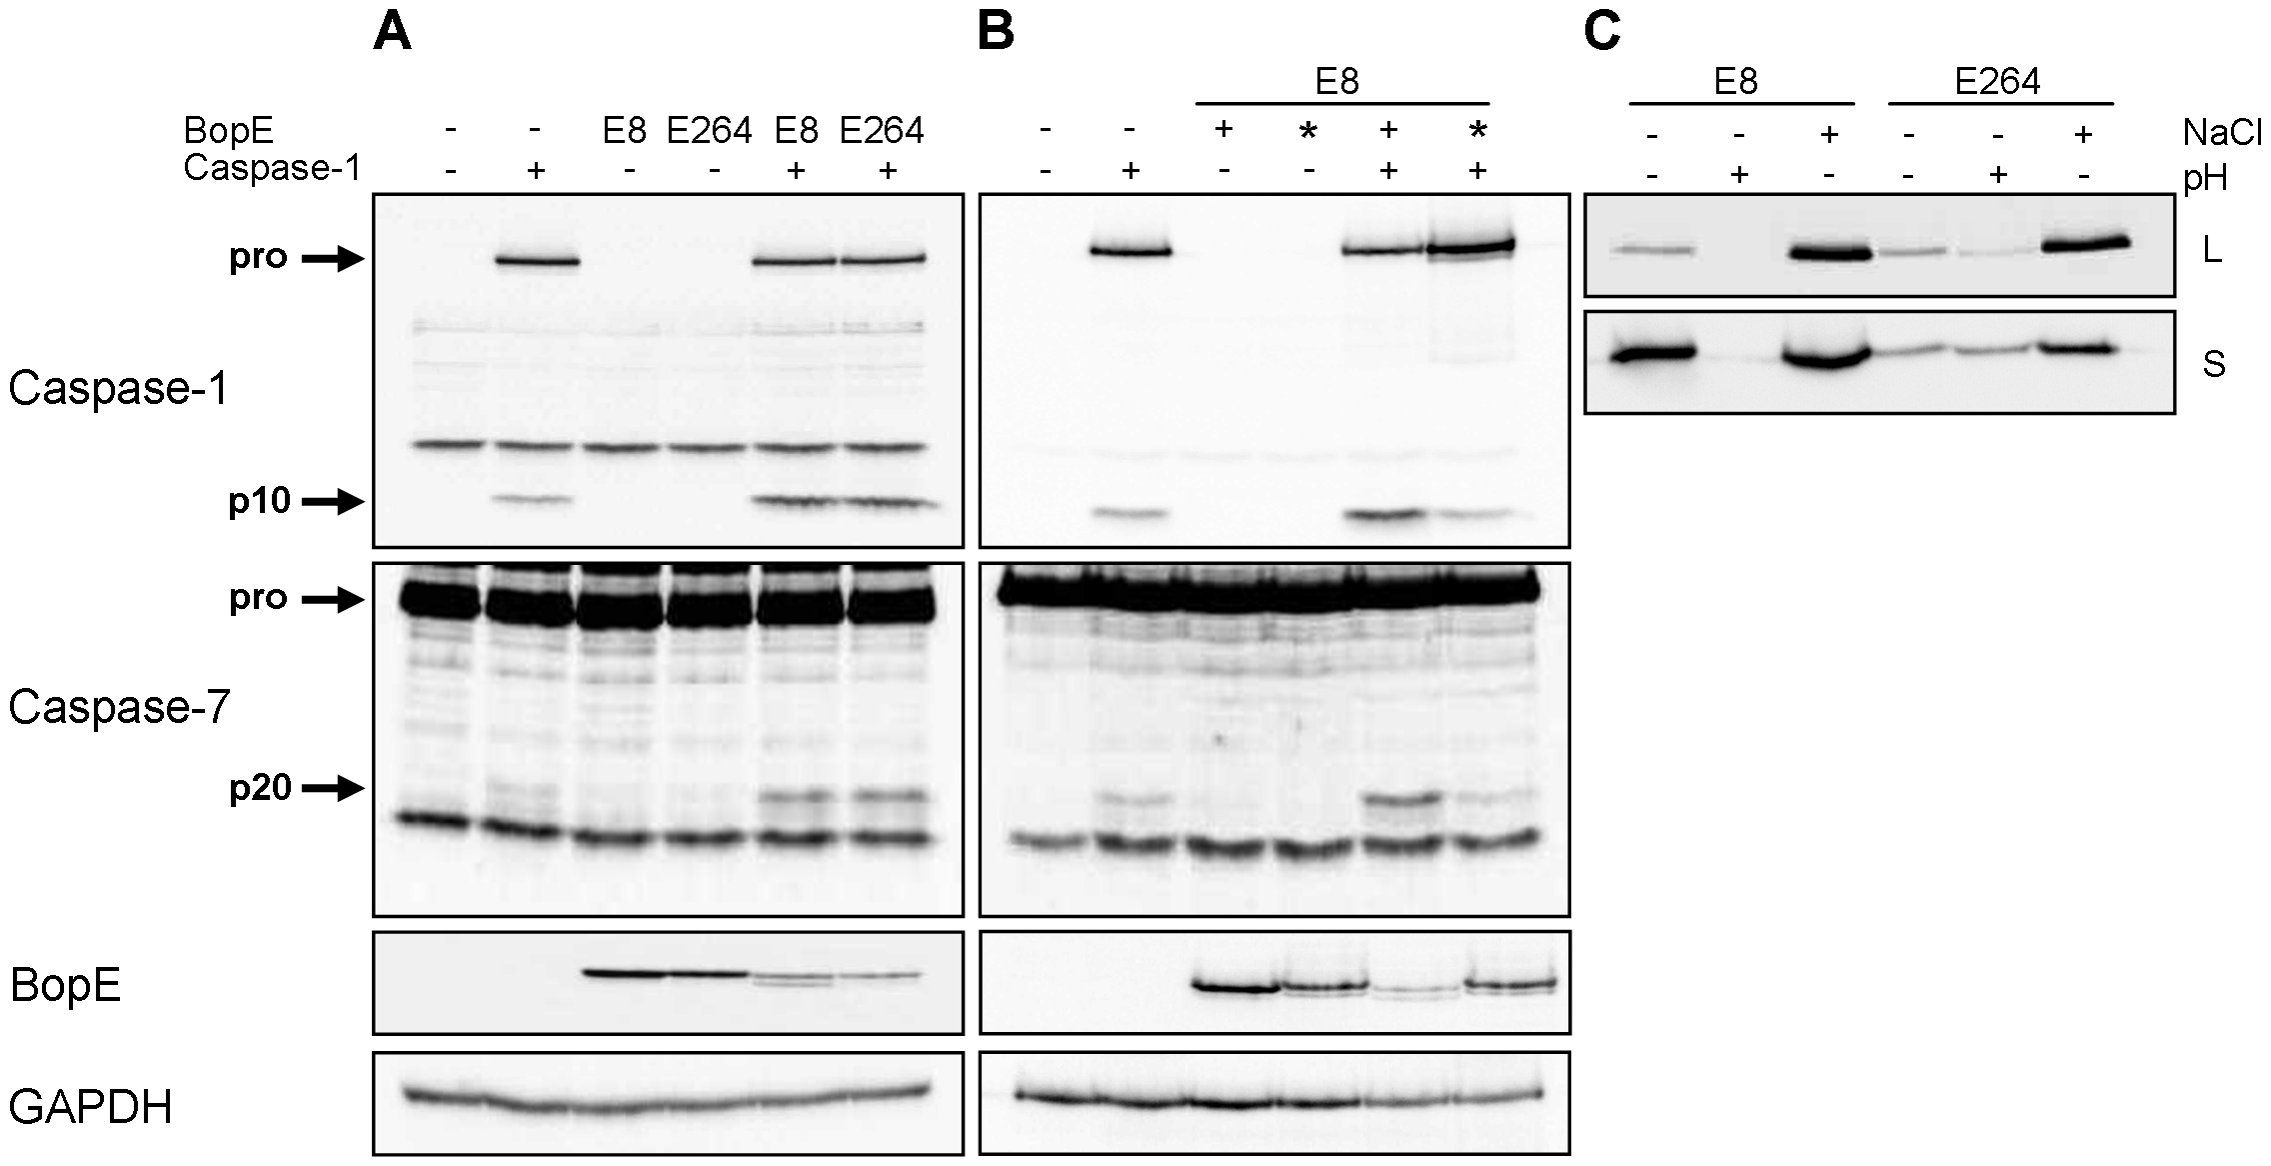 <i>Burkholderia</i> BopE is a mediator of caspase-1 activation in HEK293 cells.